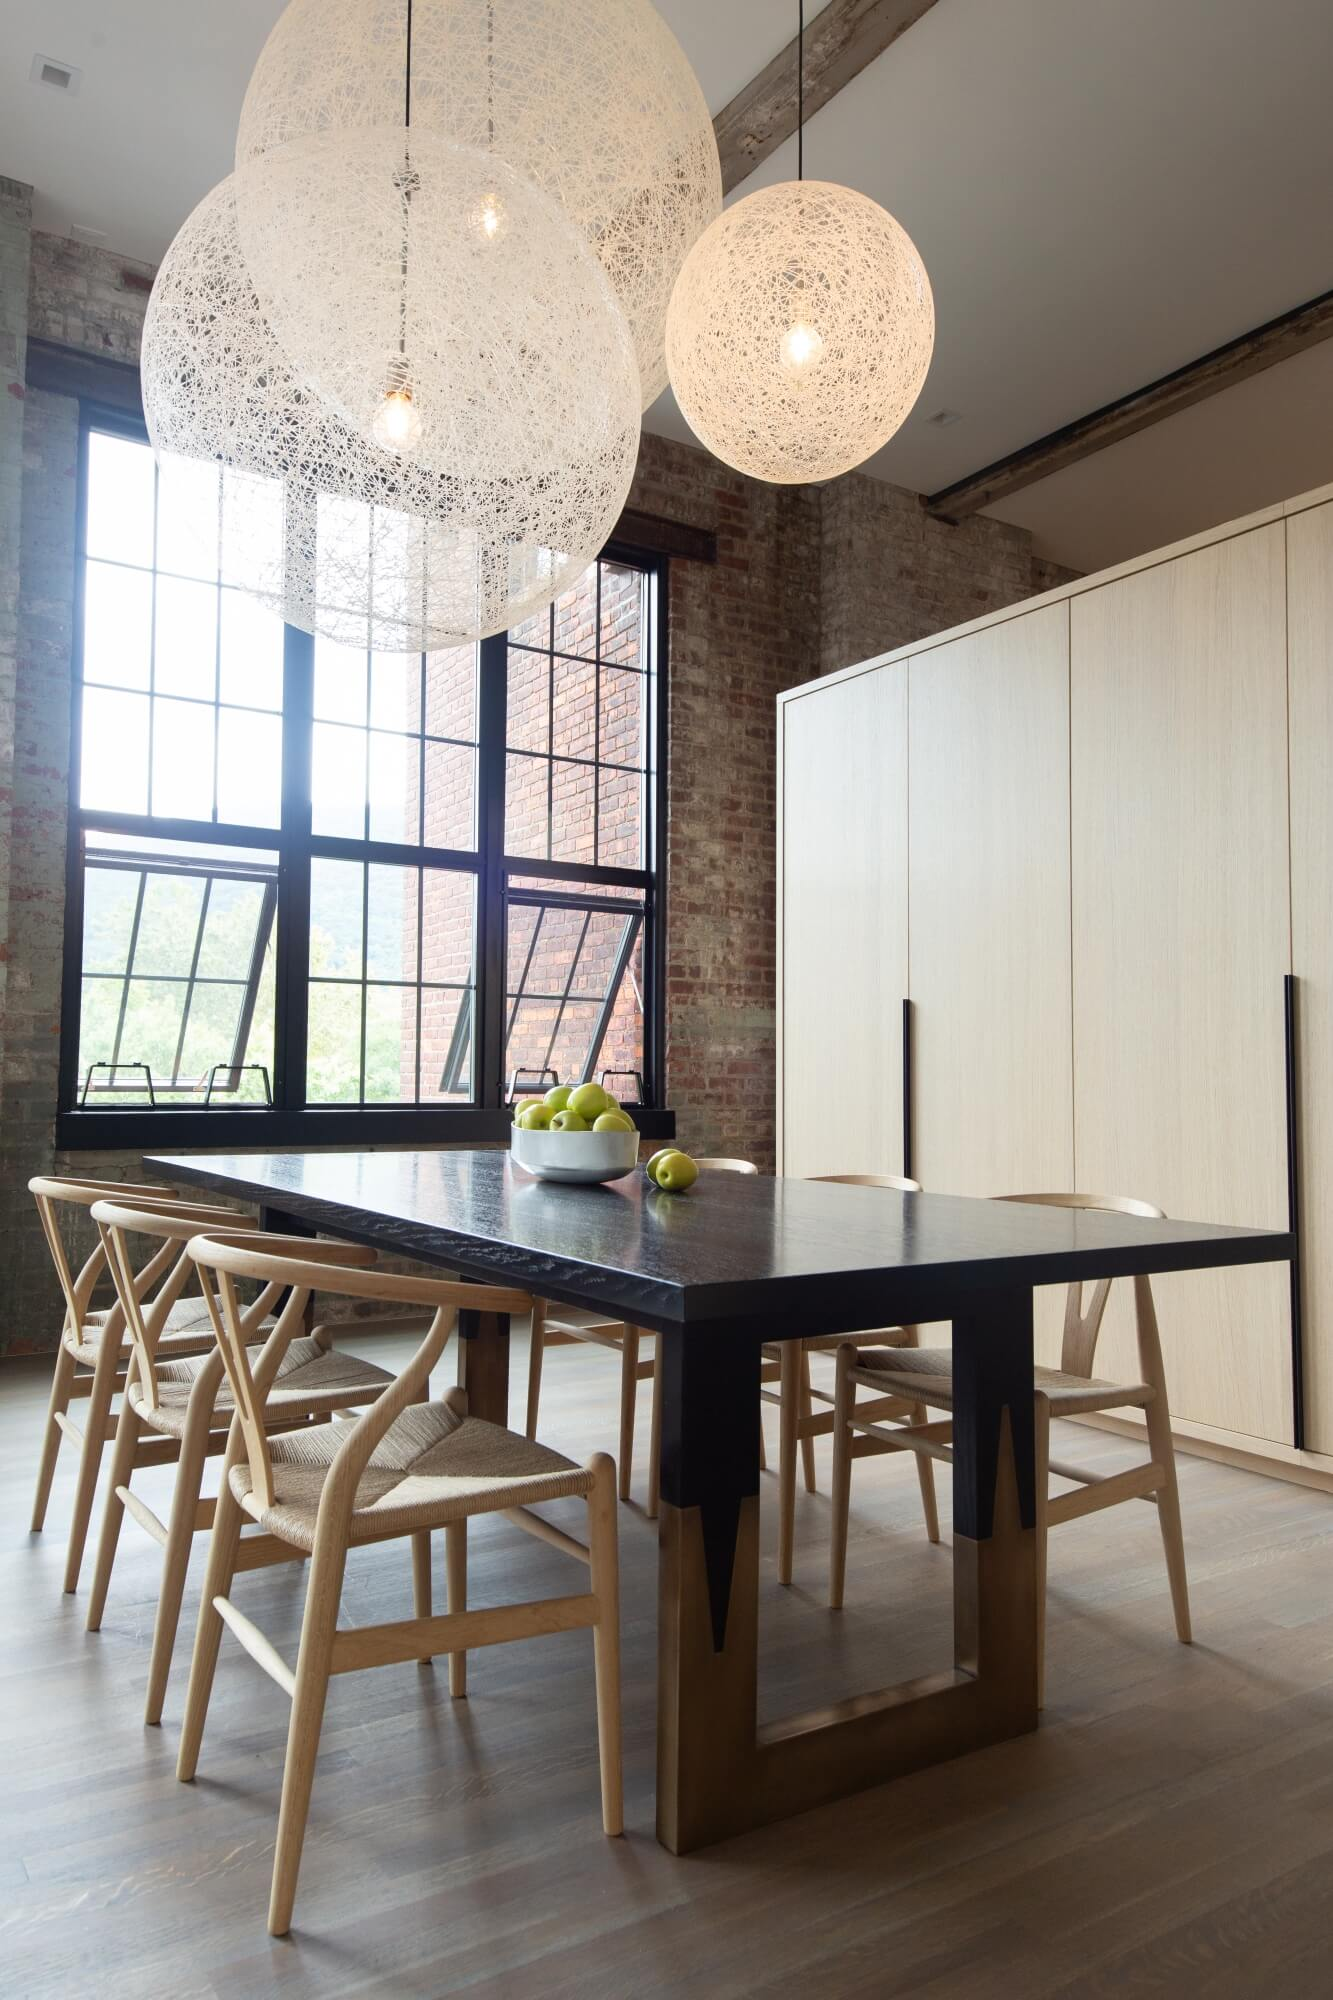 New York loft with circular lights above dining table in a room with hardwood flooring.